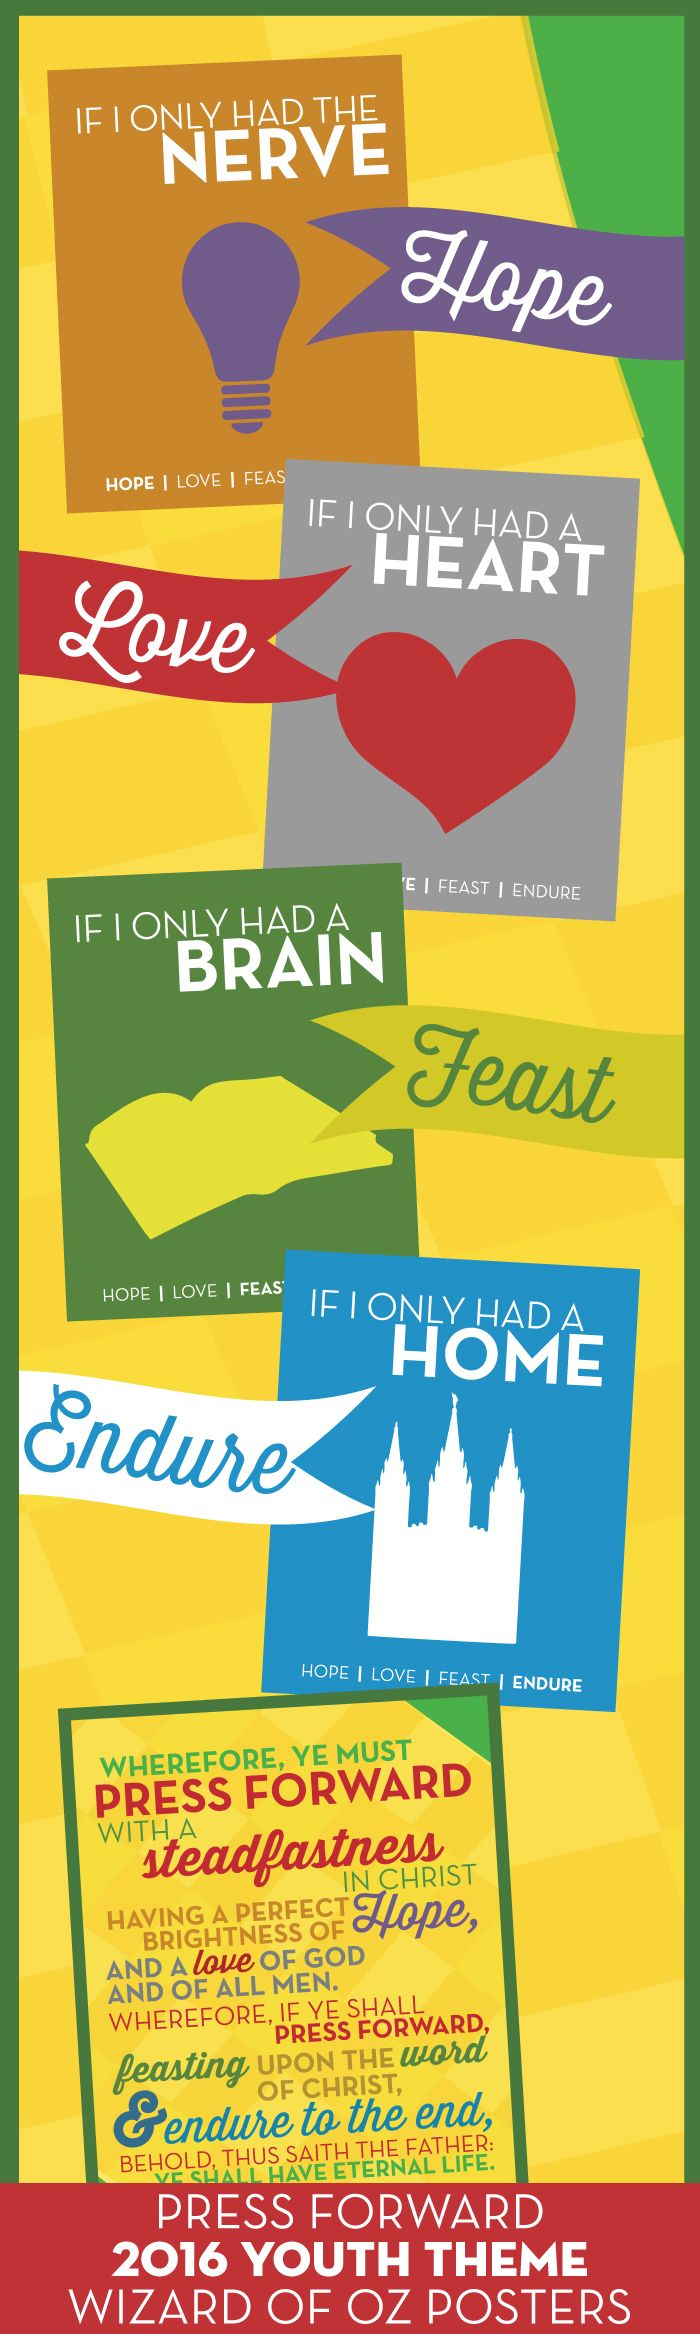 """""""Press Forward with a Steadfastness in Christ"""" 2016 Youth Theme Posters from The Wizard of Oz! For New Beginnings and Girls Camp!"""